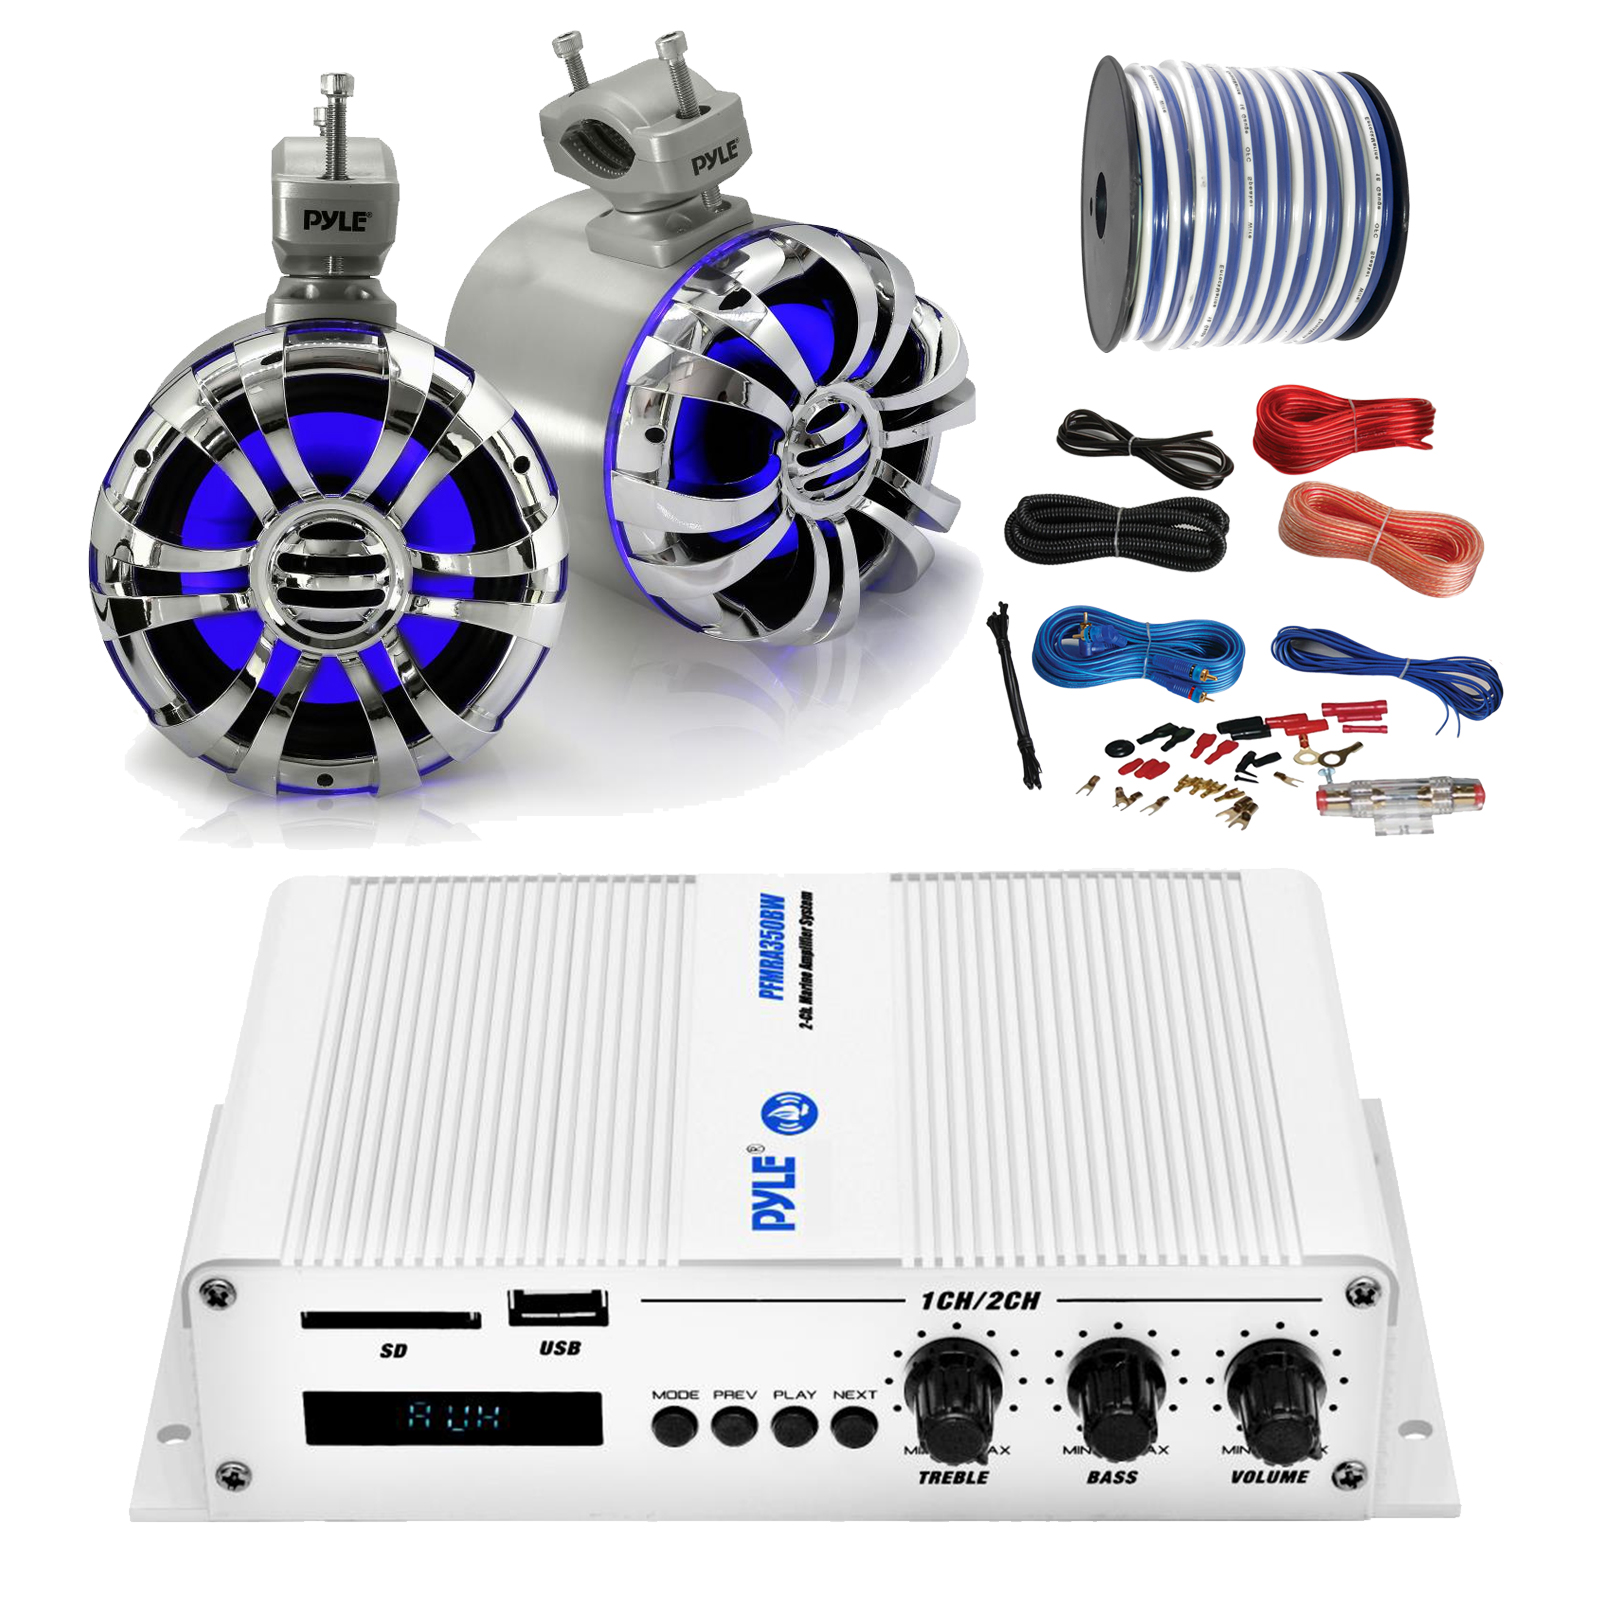 """Pyle Marine PFMRA350BW 2-Channel Bluetooth White Amplifier, Pyle 5.25"""" Wakeboard Waterproof IP44 Rated Tower Silver LED Speakers (Pair), Amp Install Kit, 18-G 50 Ft Speaker Wire"""